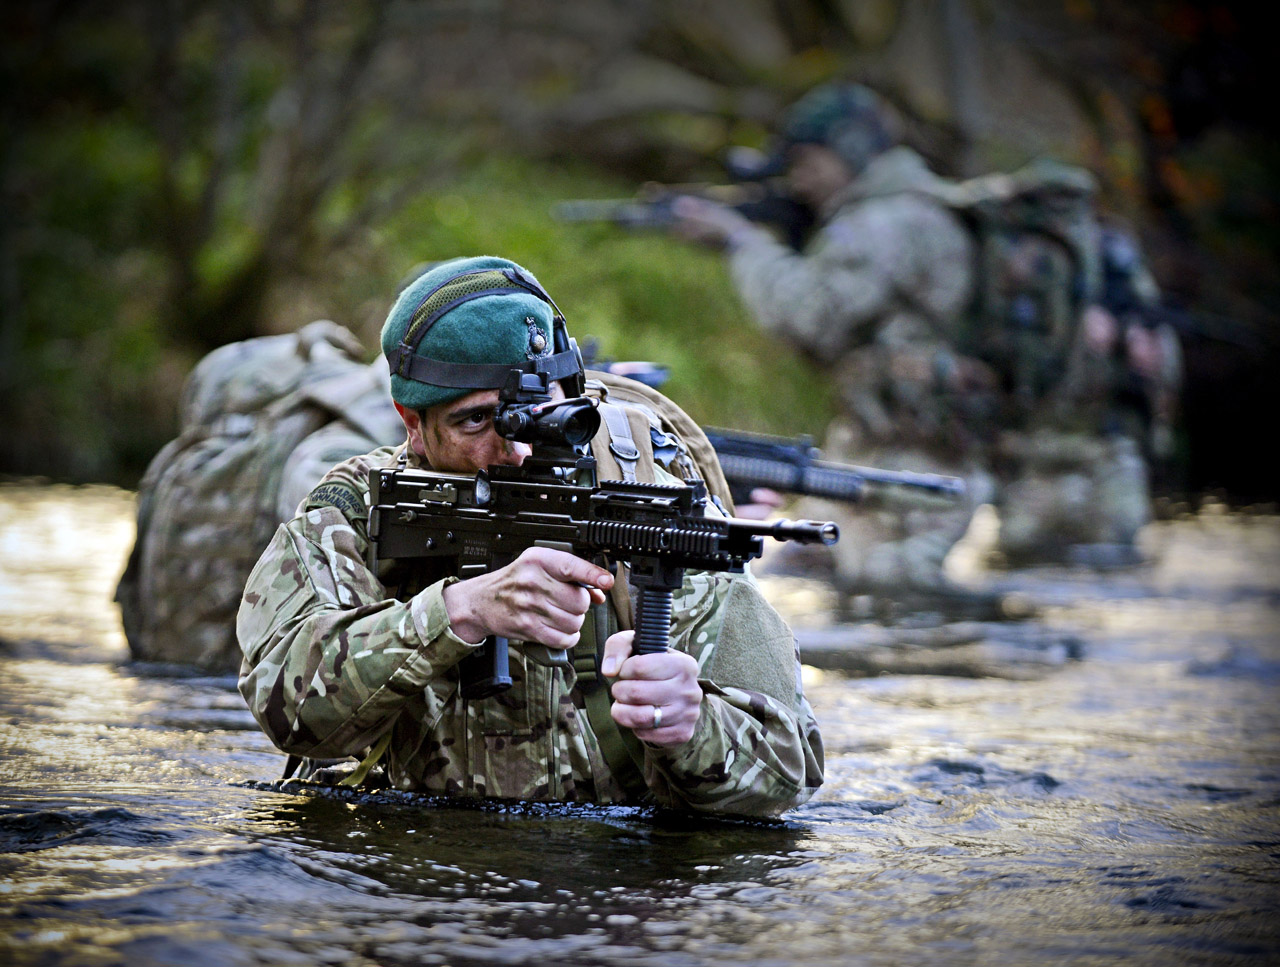 43 Commando go stalking through the glen